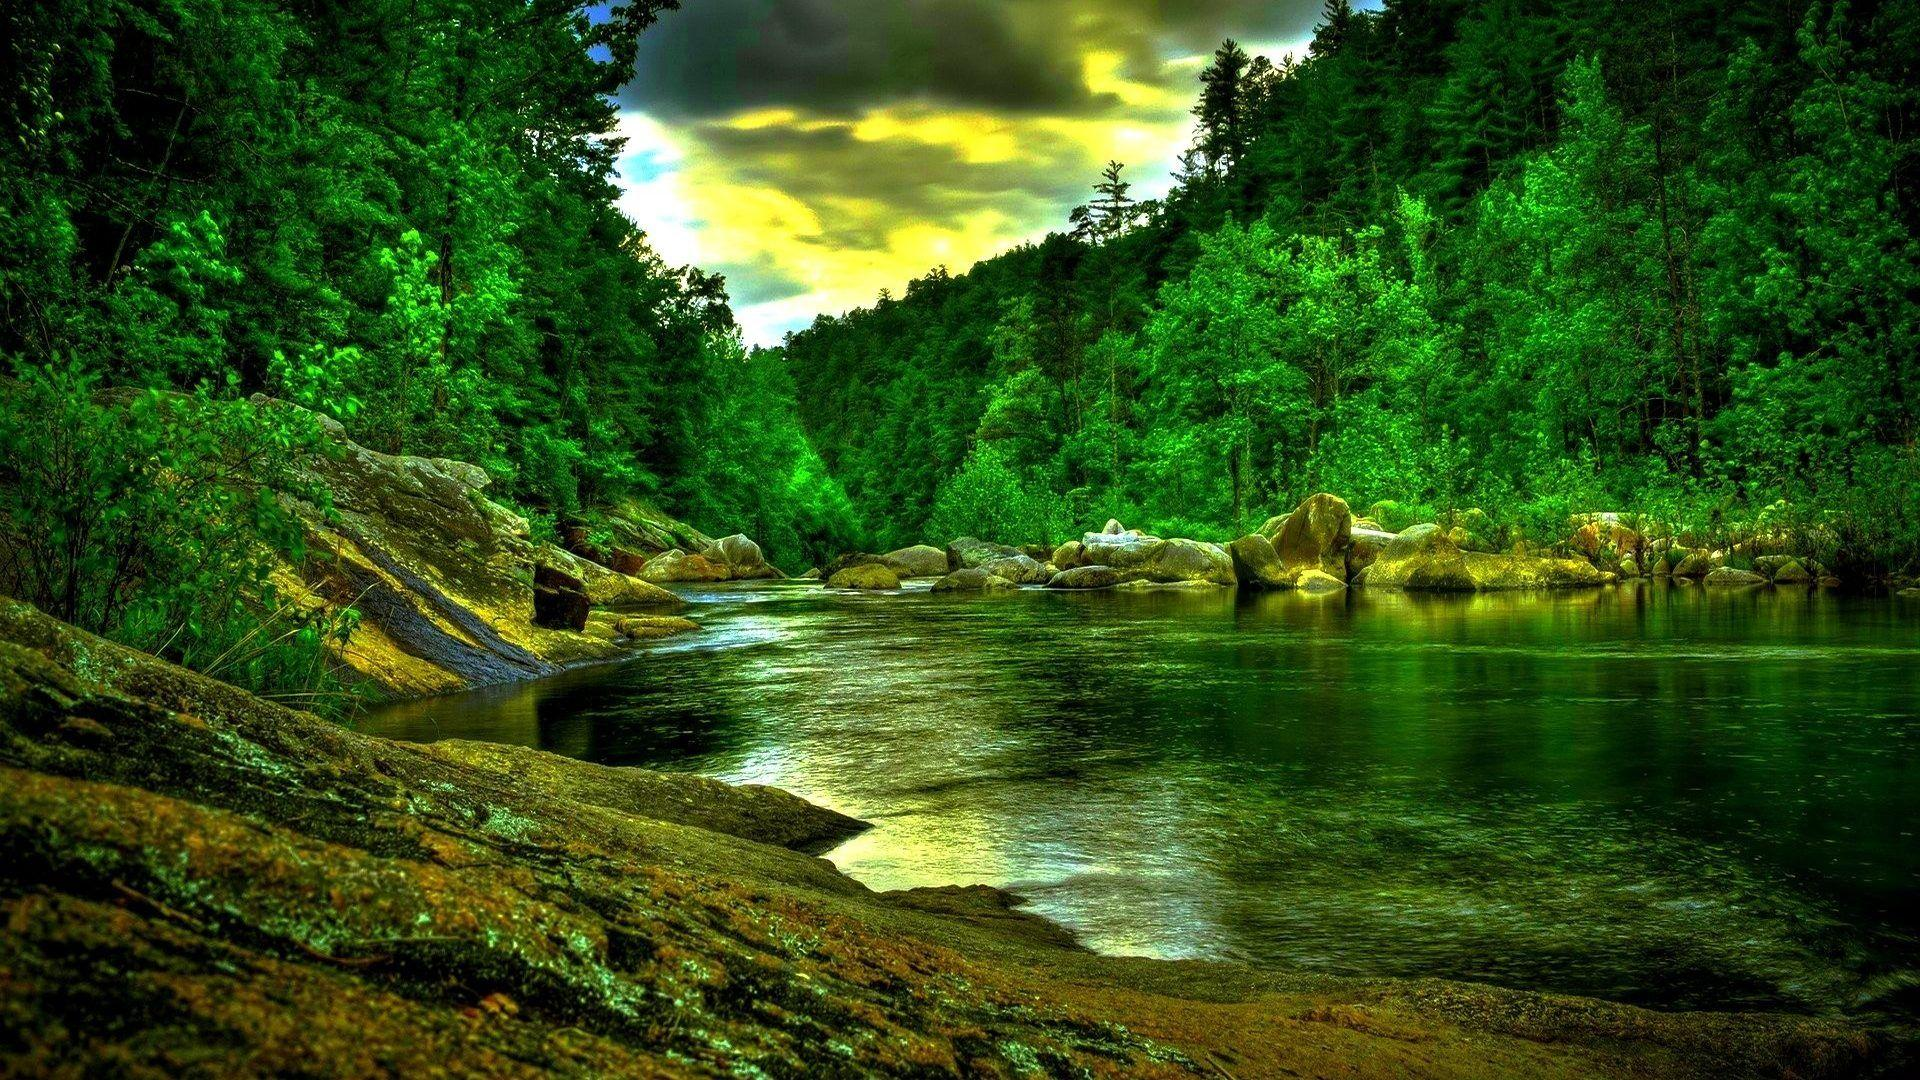 Nature Wallpapers For Desktop Backgrounds Full Screen